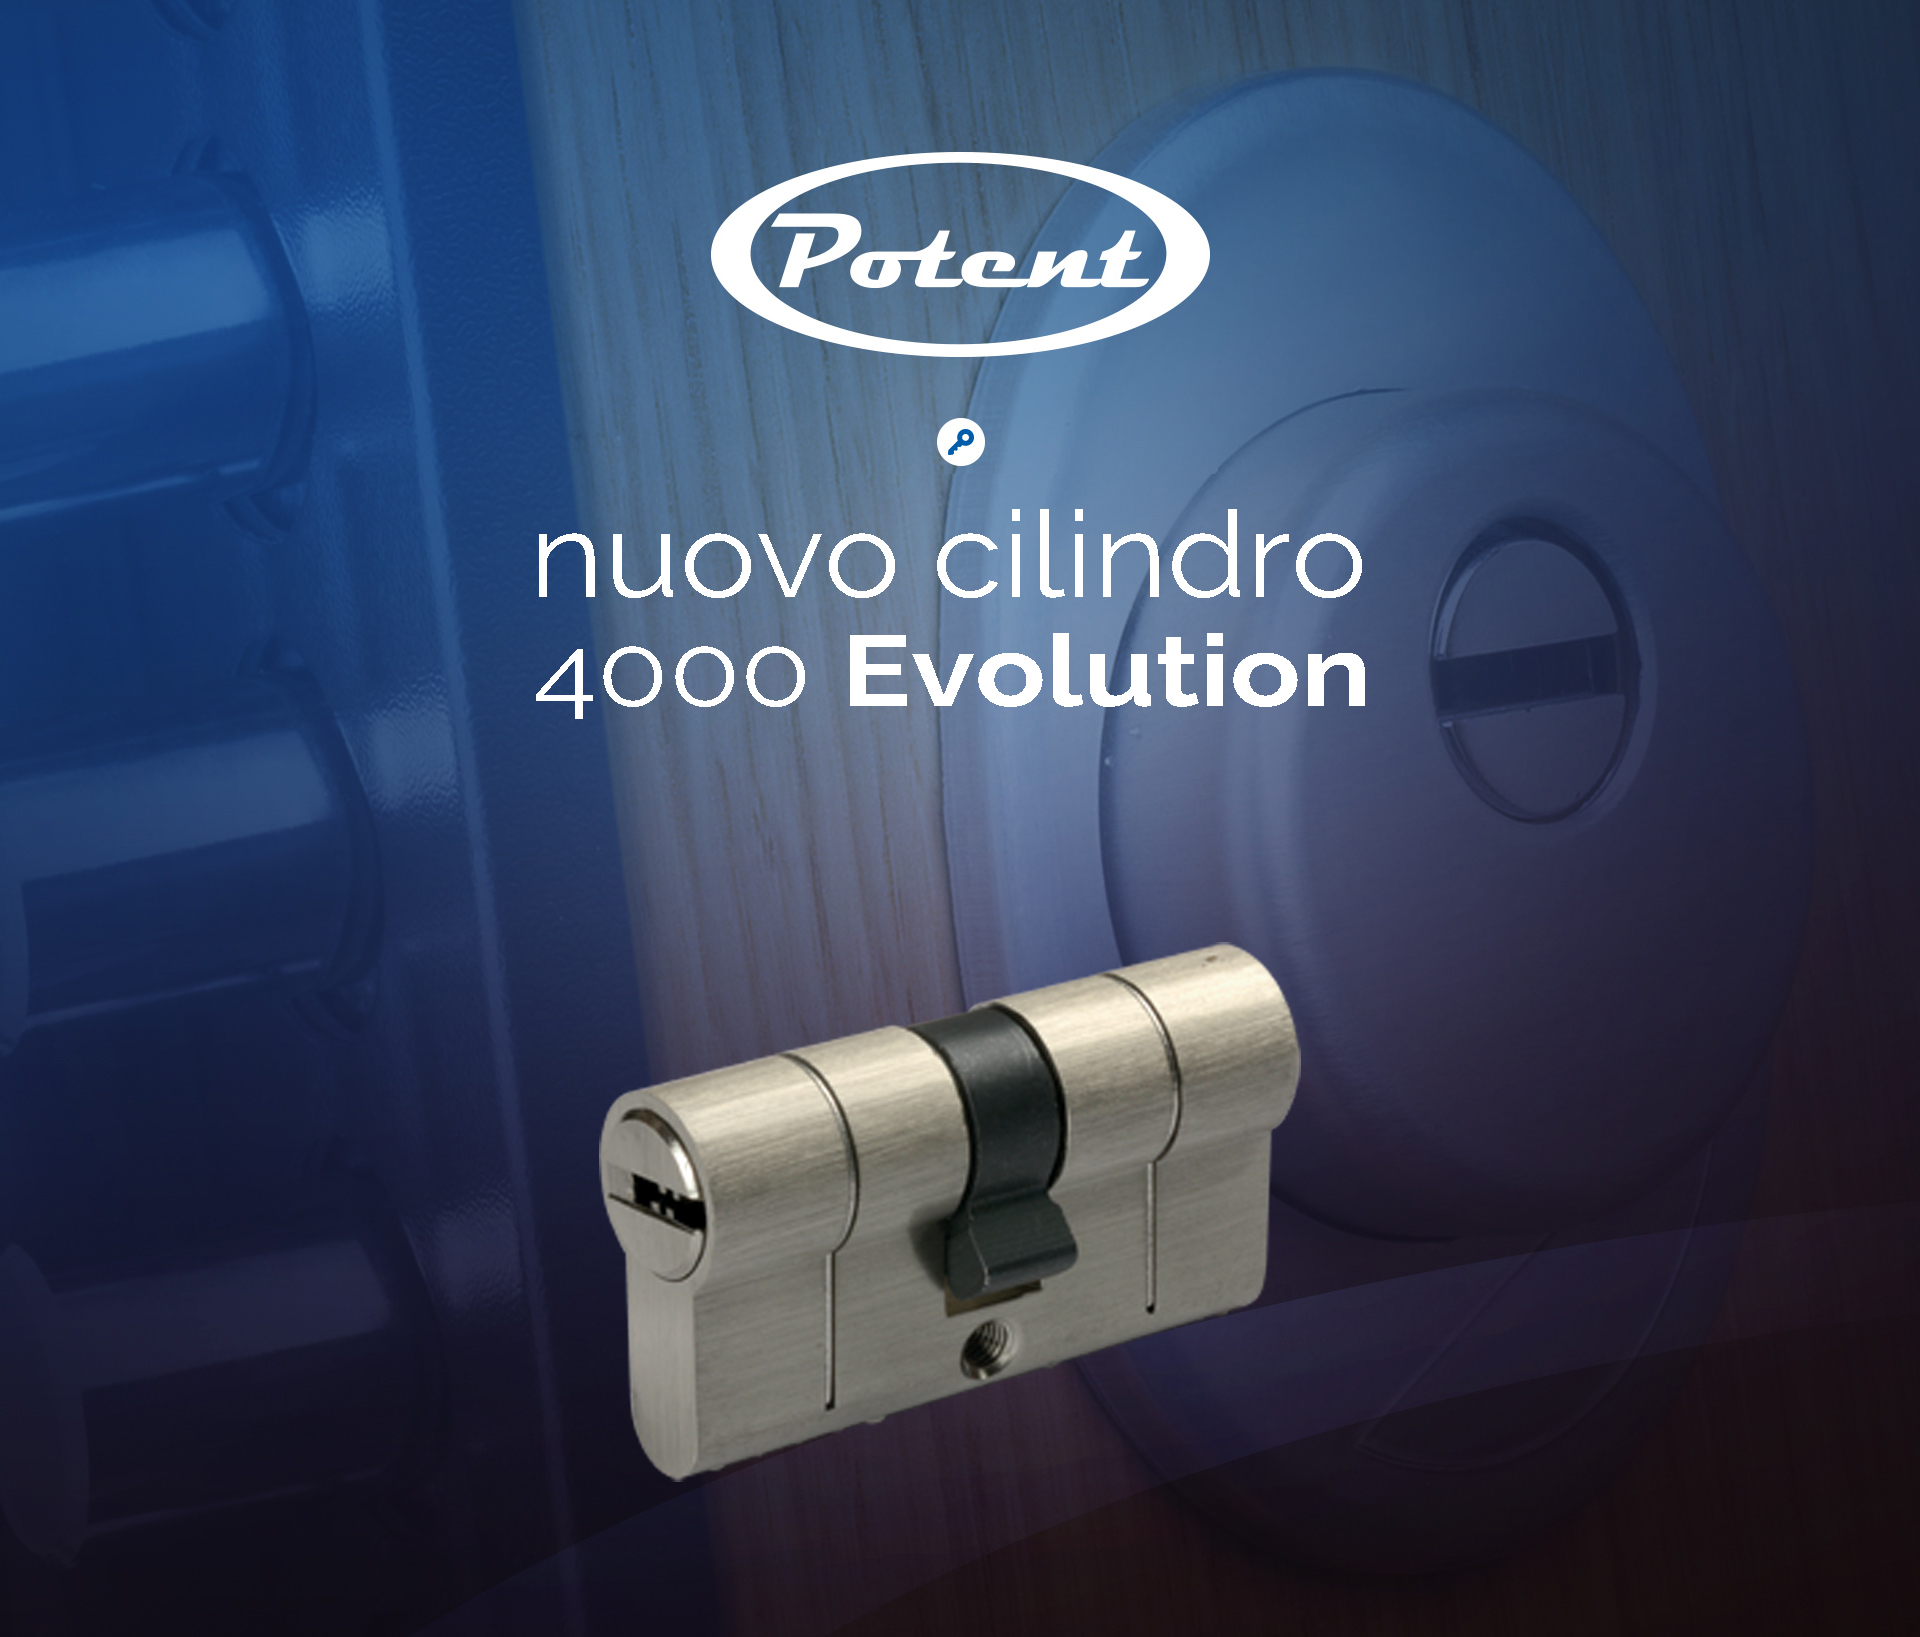 Potent nuovo cilindro 4000 evolution slider